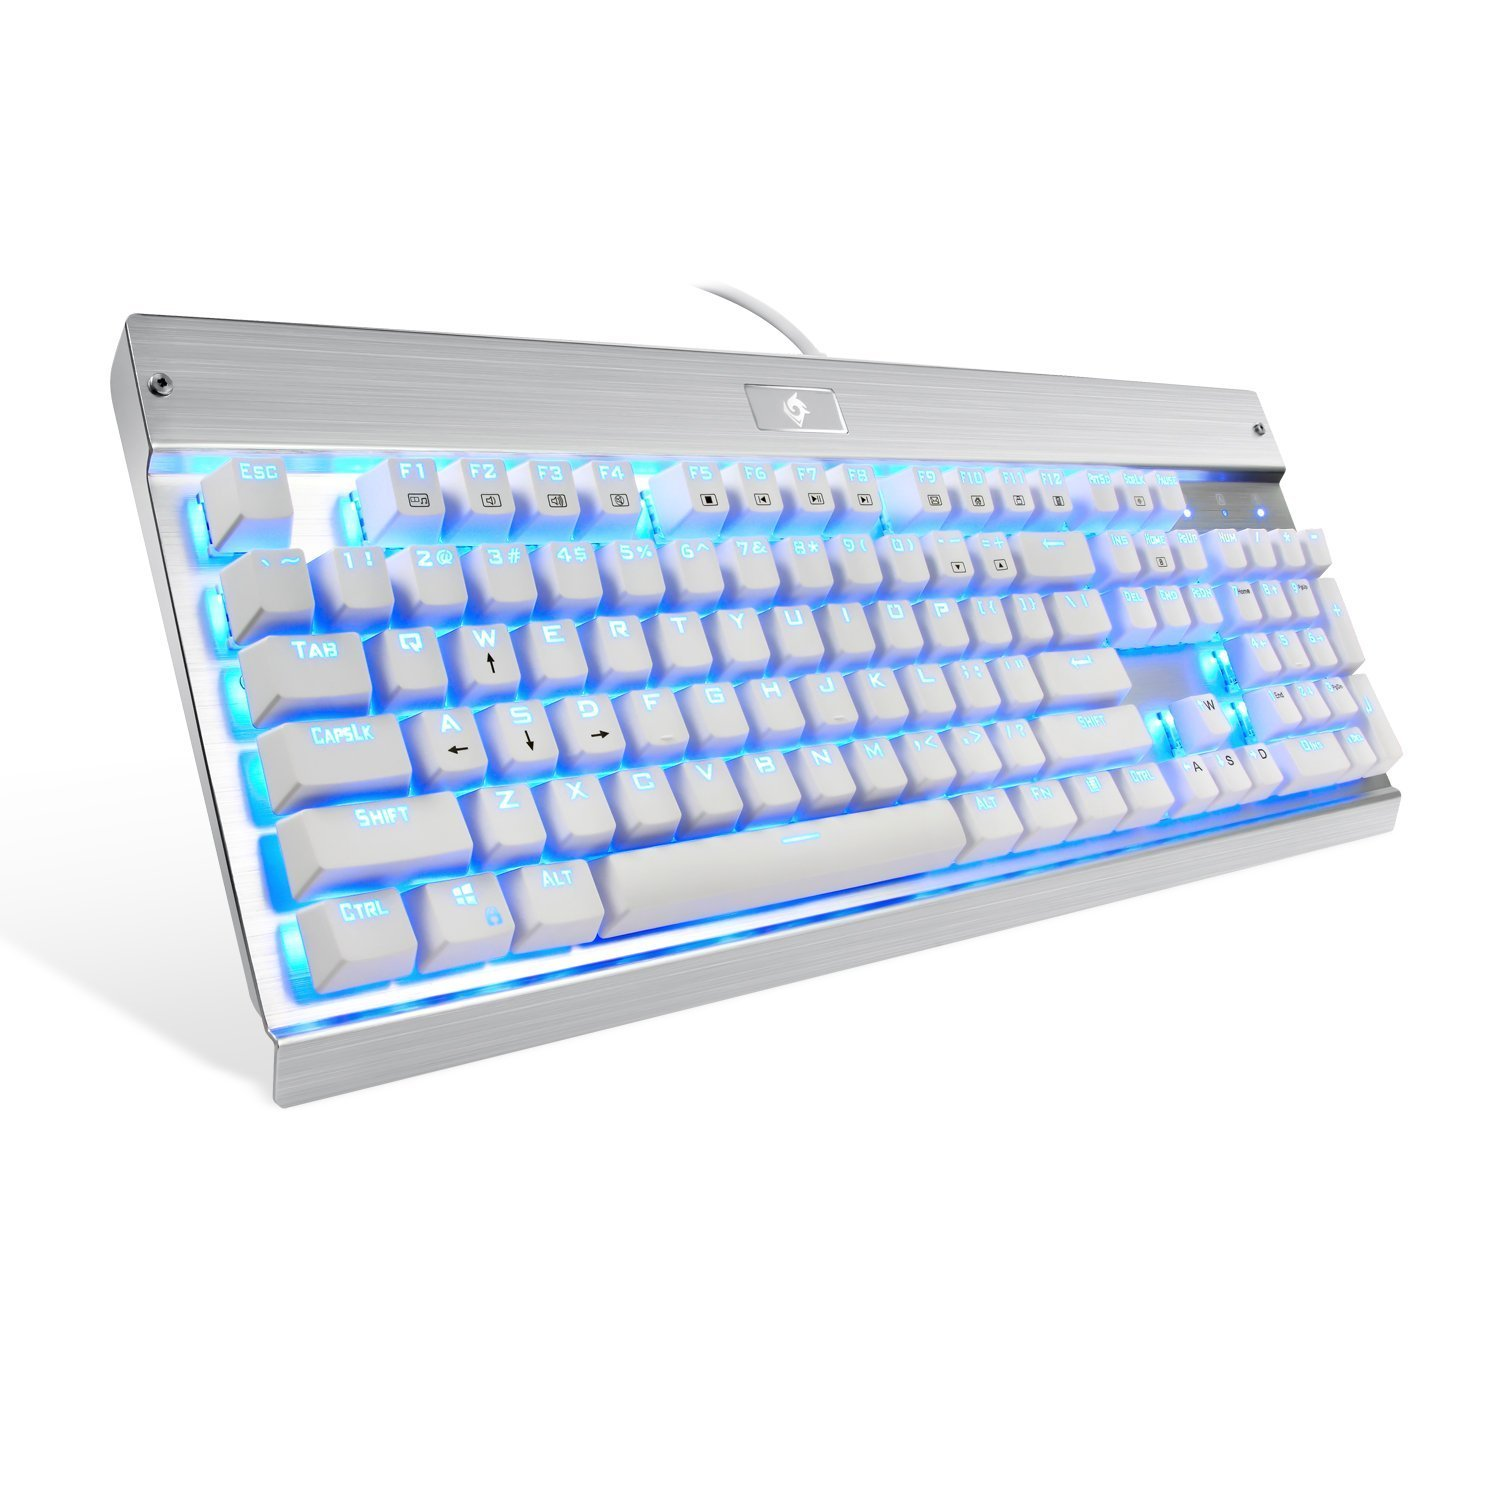 Amazon mechanical keyboard - Amazon Com Eagletec Kg011 Office Industrial Led Backlit Mechanical Keyboard White Silver Computers Accessories